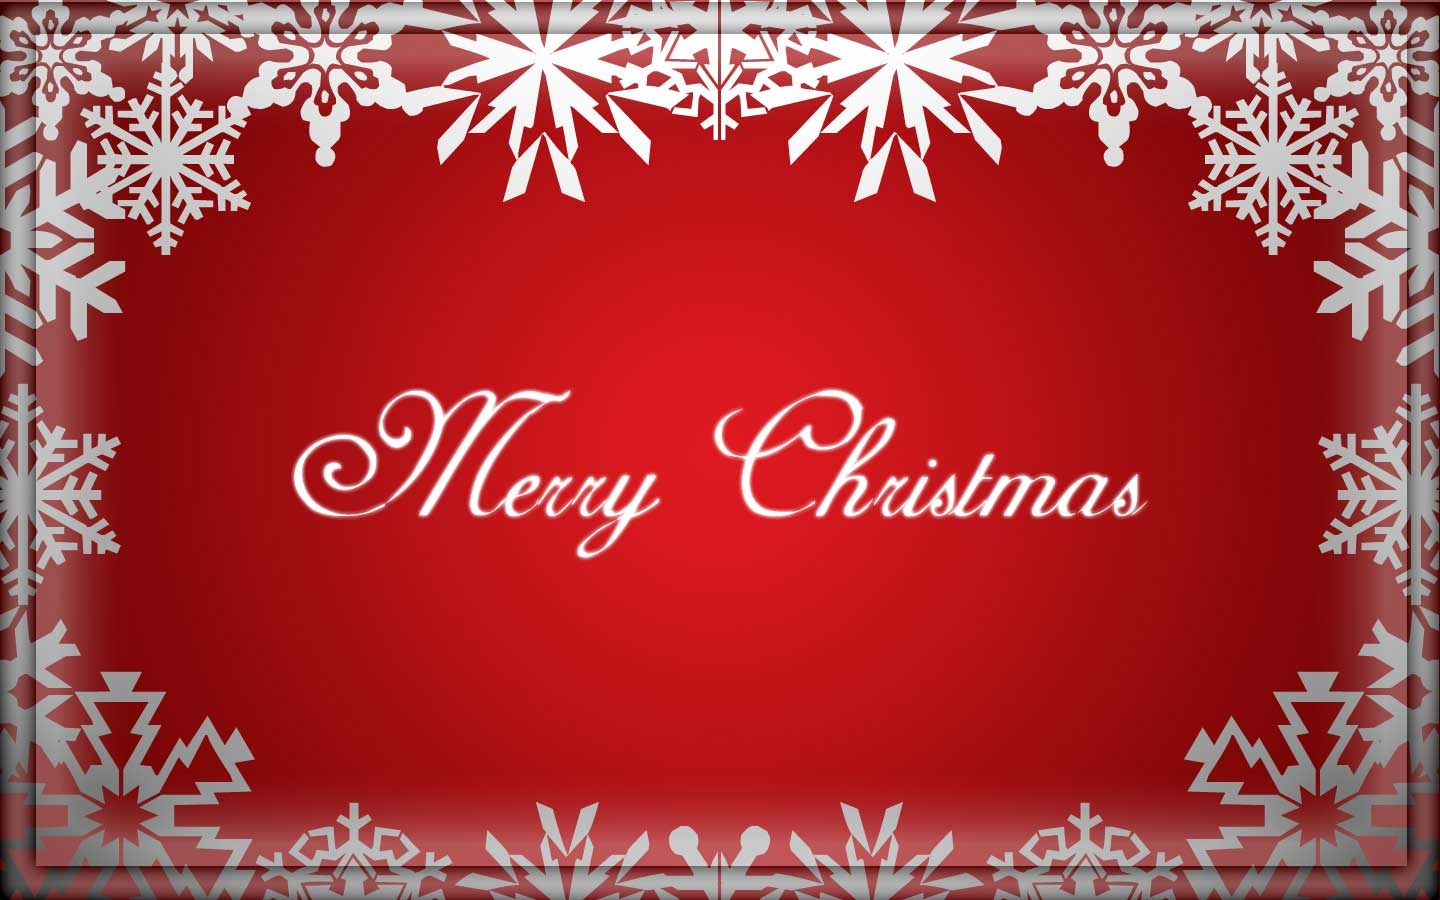 online christmas greetings oyle kalakaari co